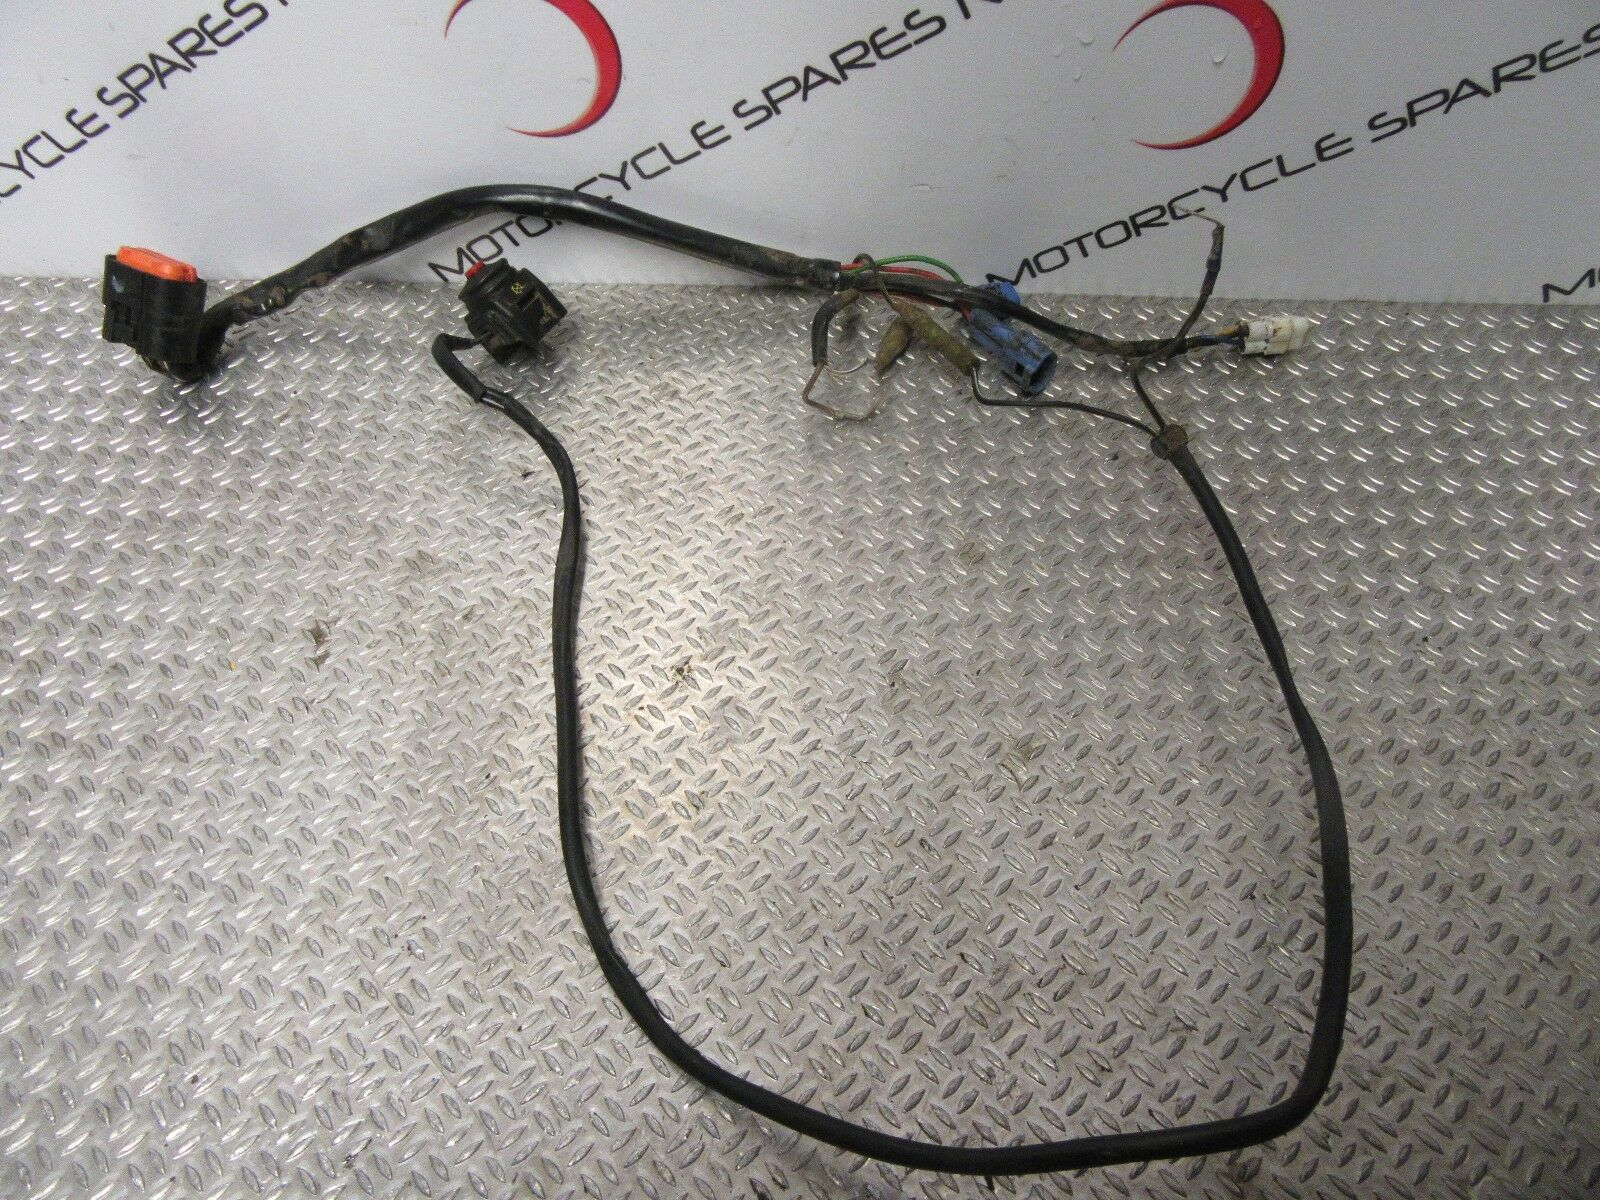 Ktm Exc Xcf 250 2009 08 11 Wiring Loom Harness Off Road Only Bk359 525 1 Of 3only Available